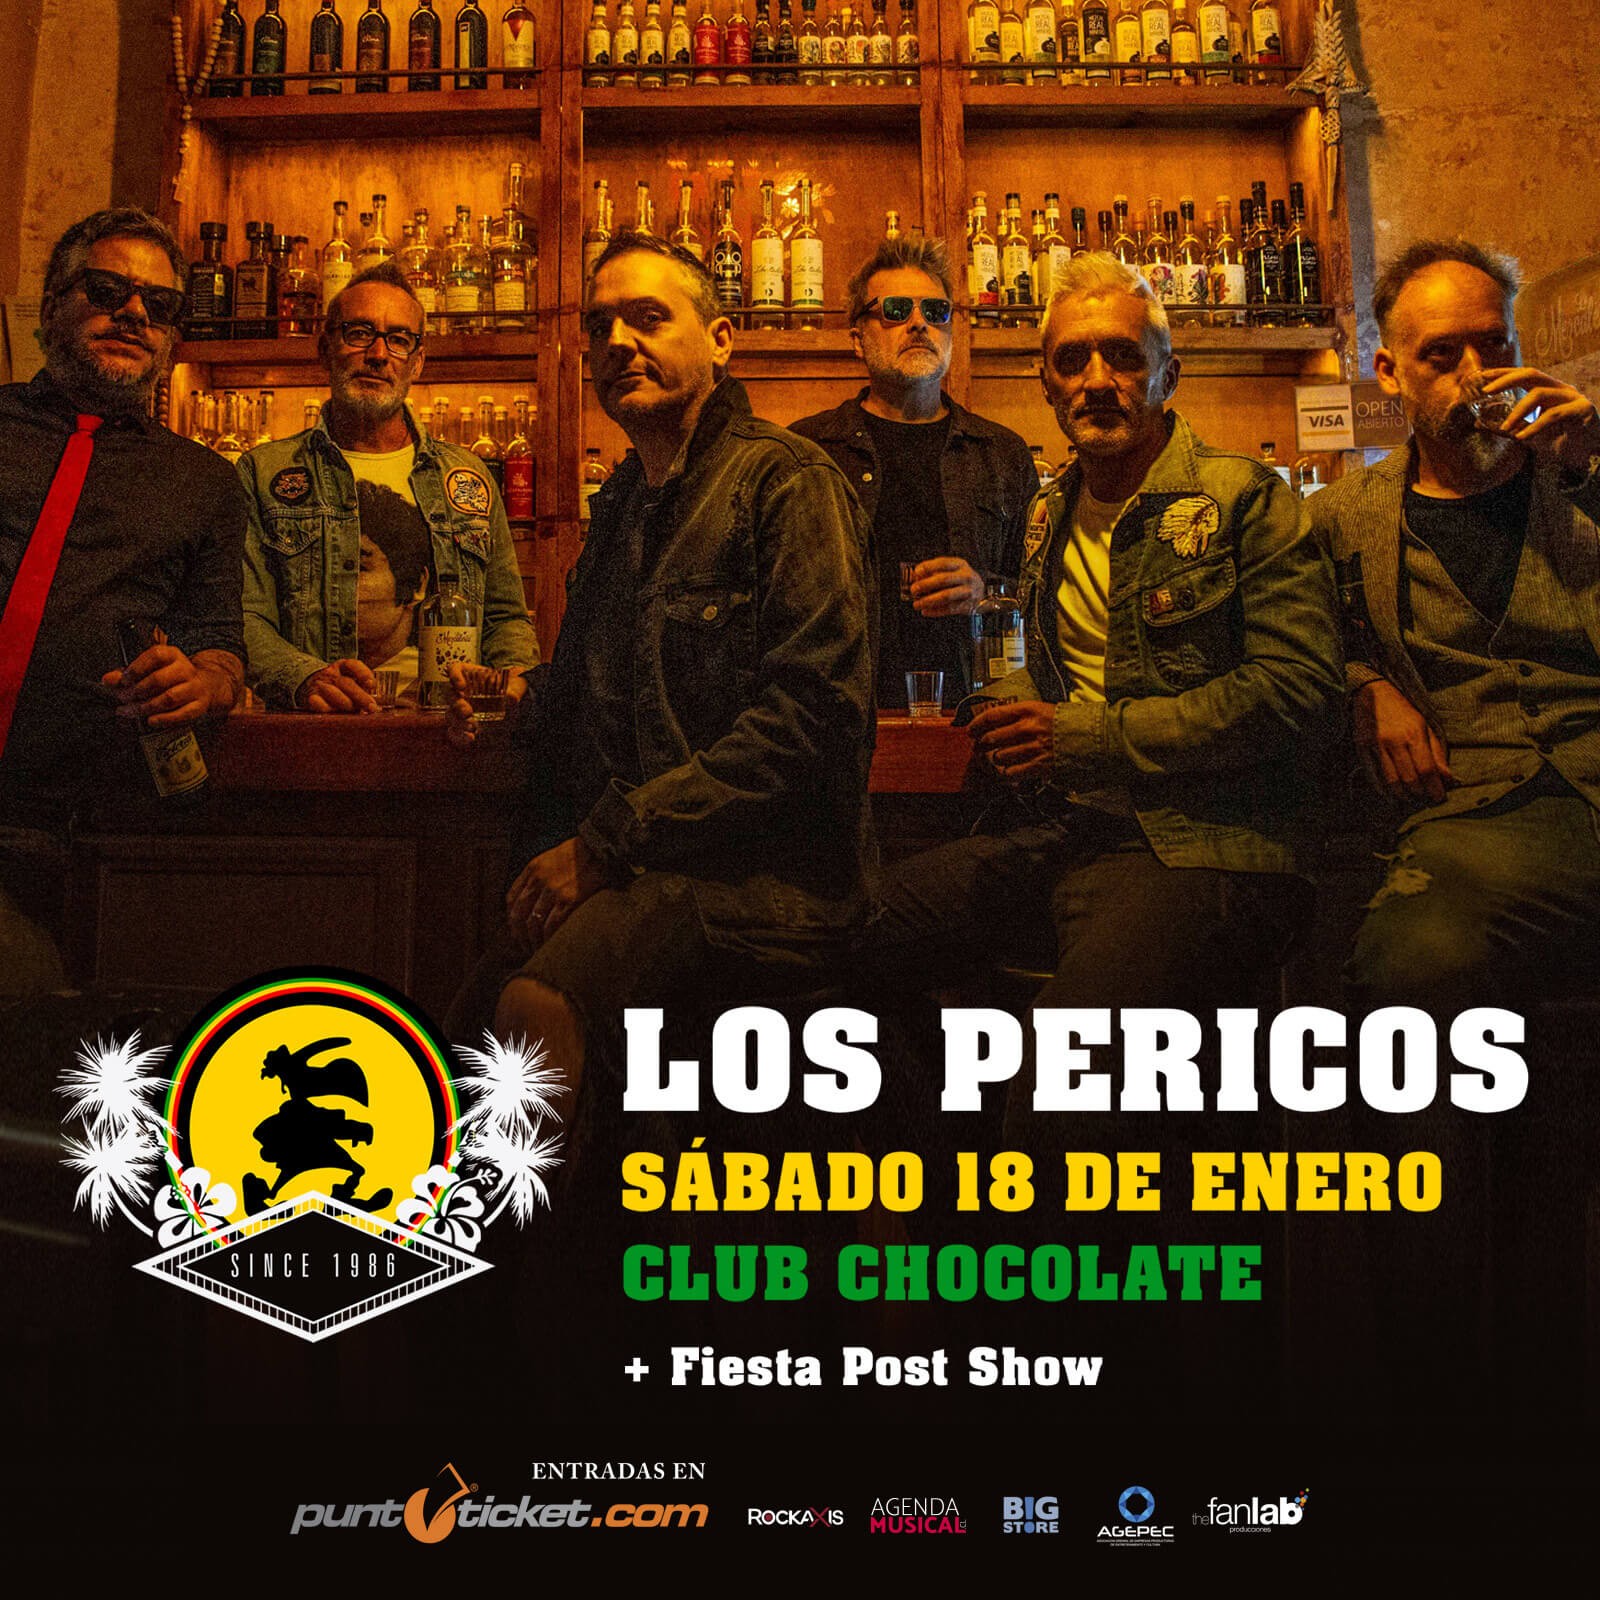 Los Pericos - Club Chocolate - 18 de enero